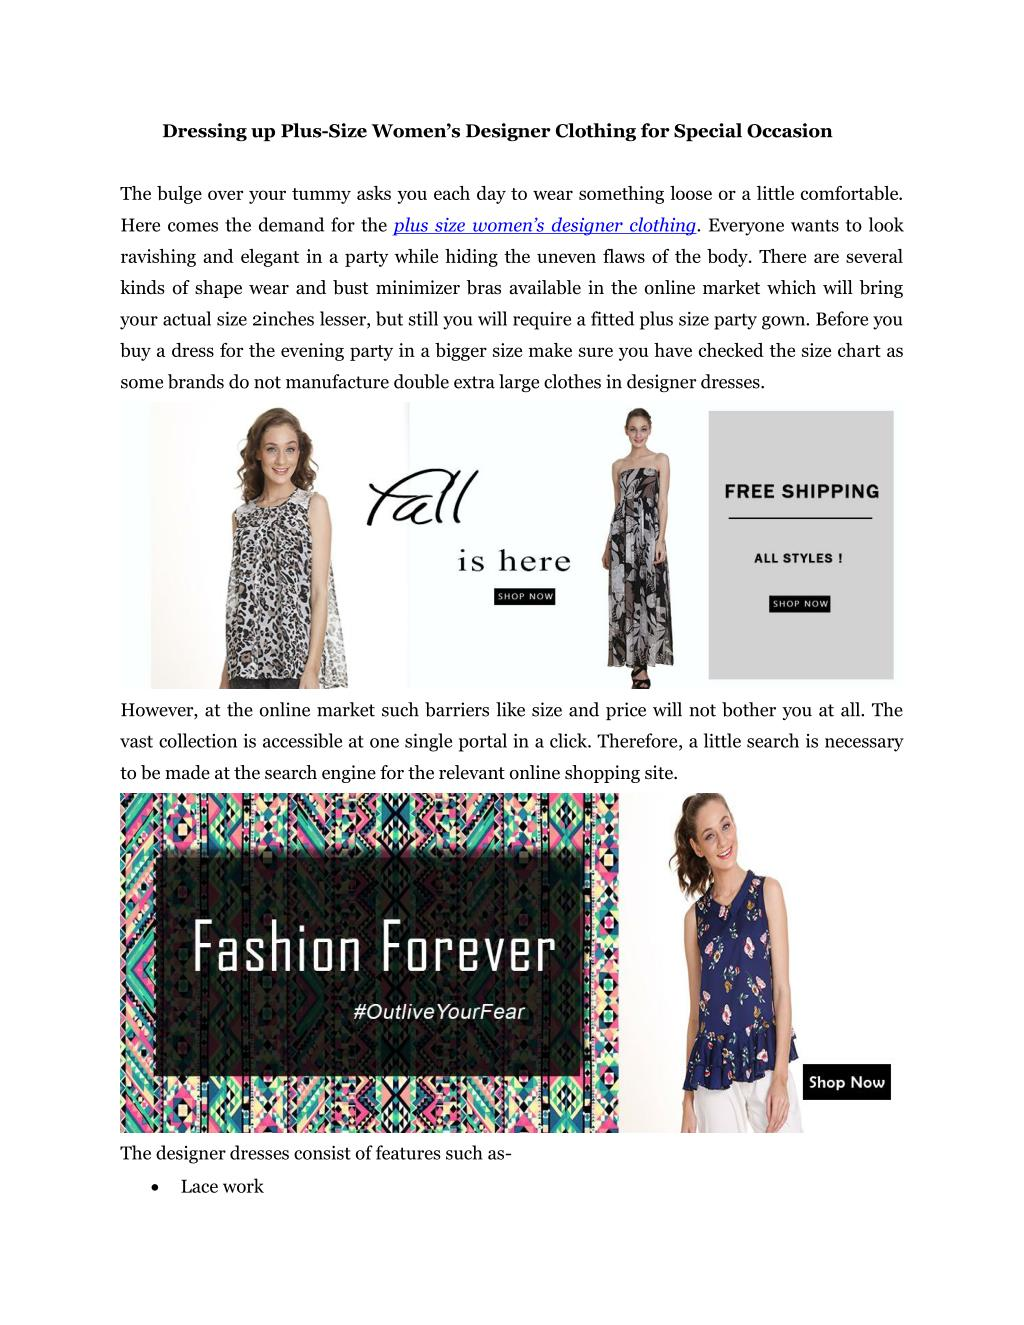 Ppt Dressing Up Plus Size Women S Designer Clothing For Special Occasion Powerpoint Presentation Id 7221411